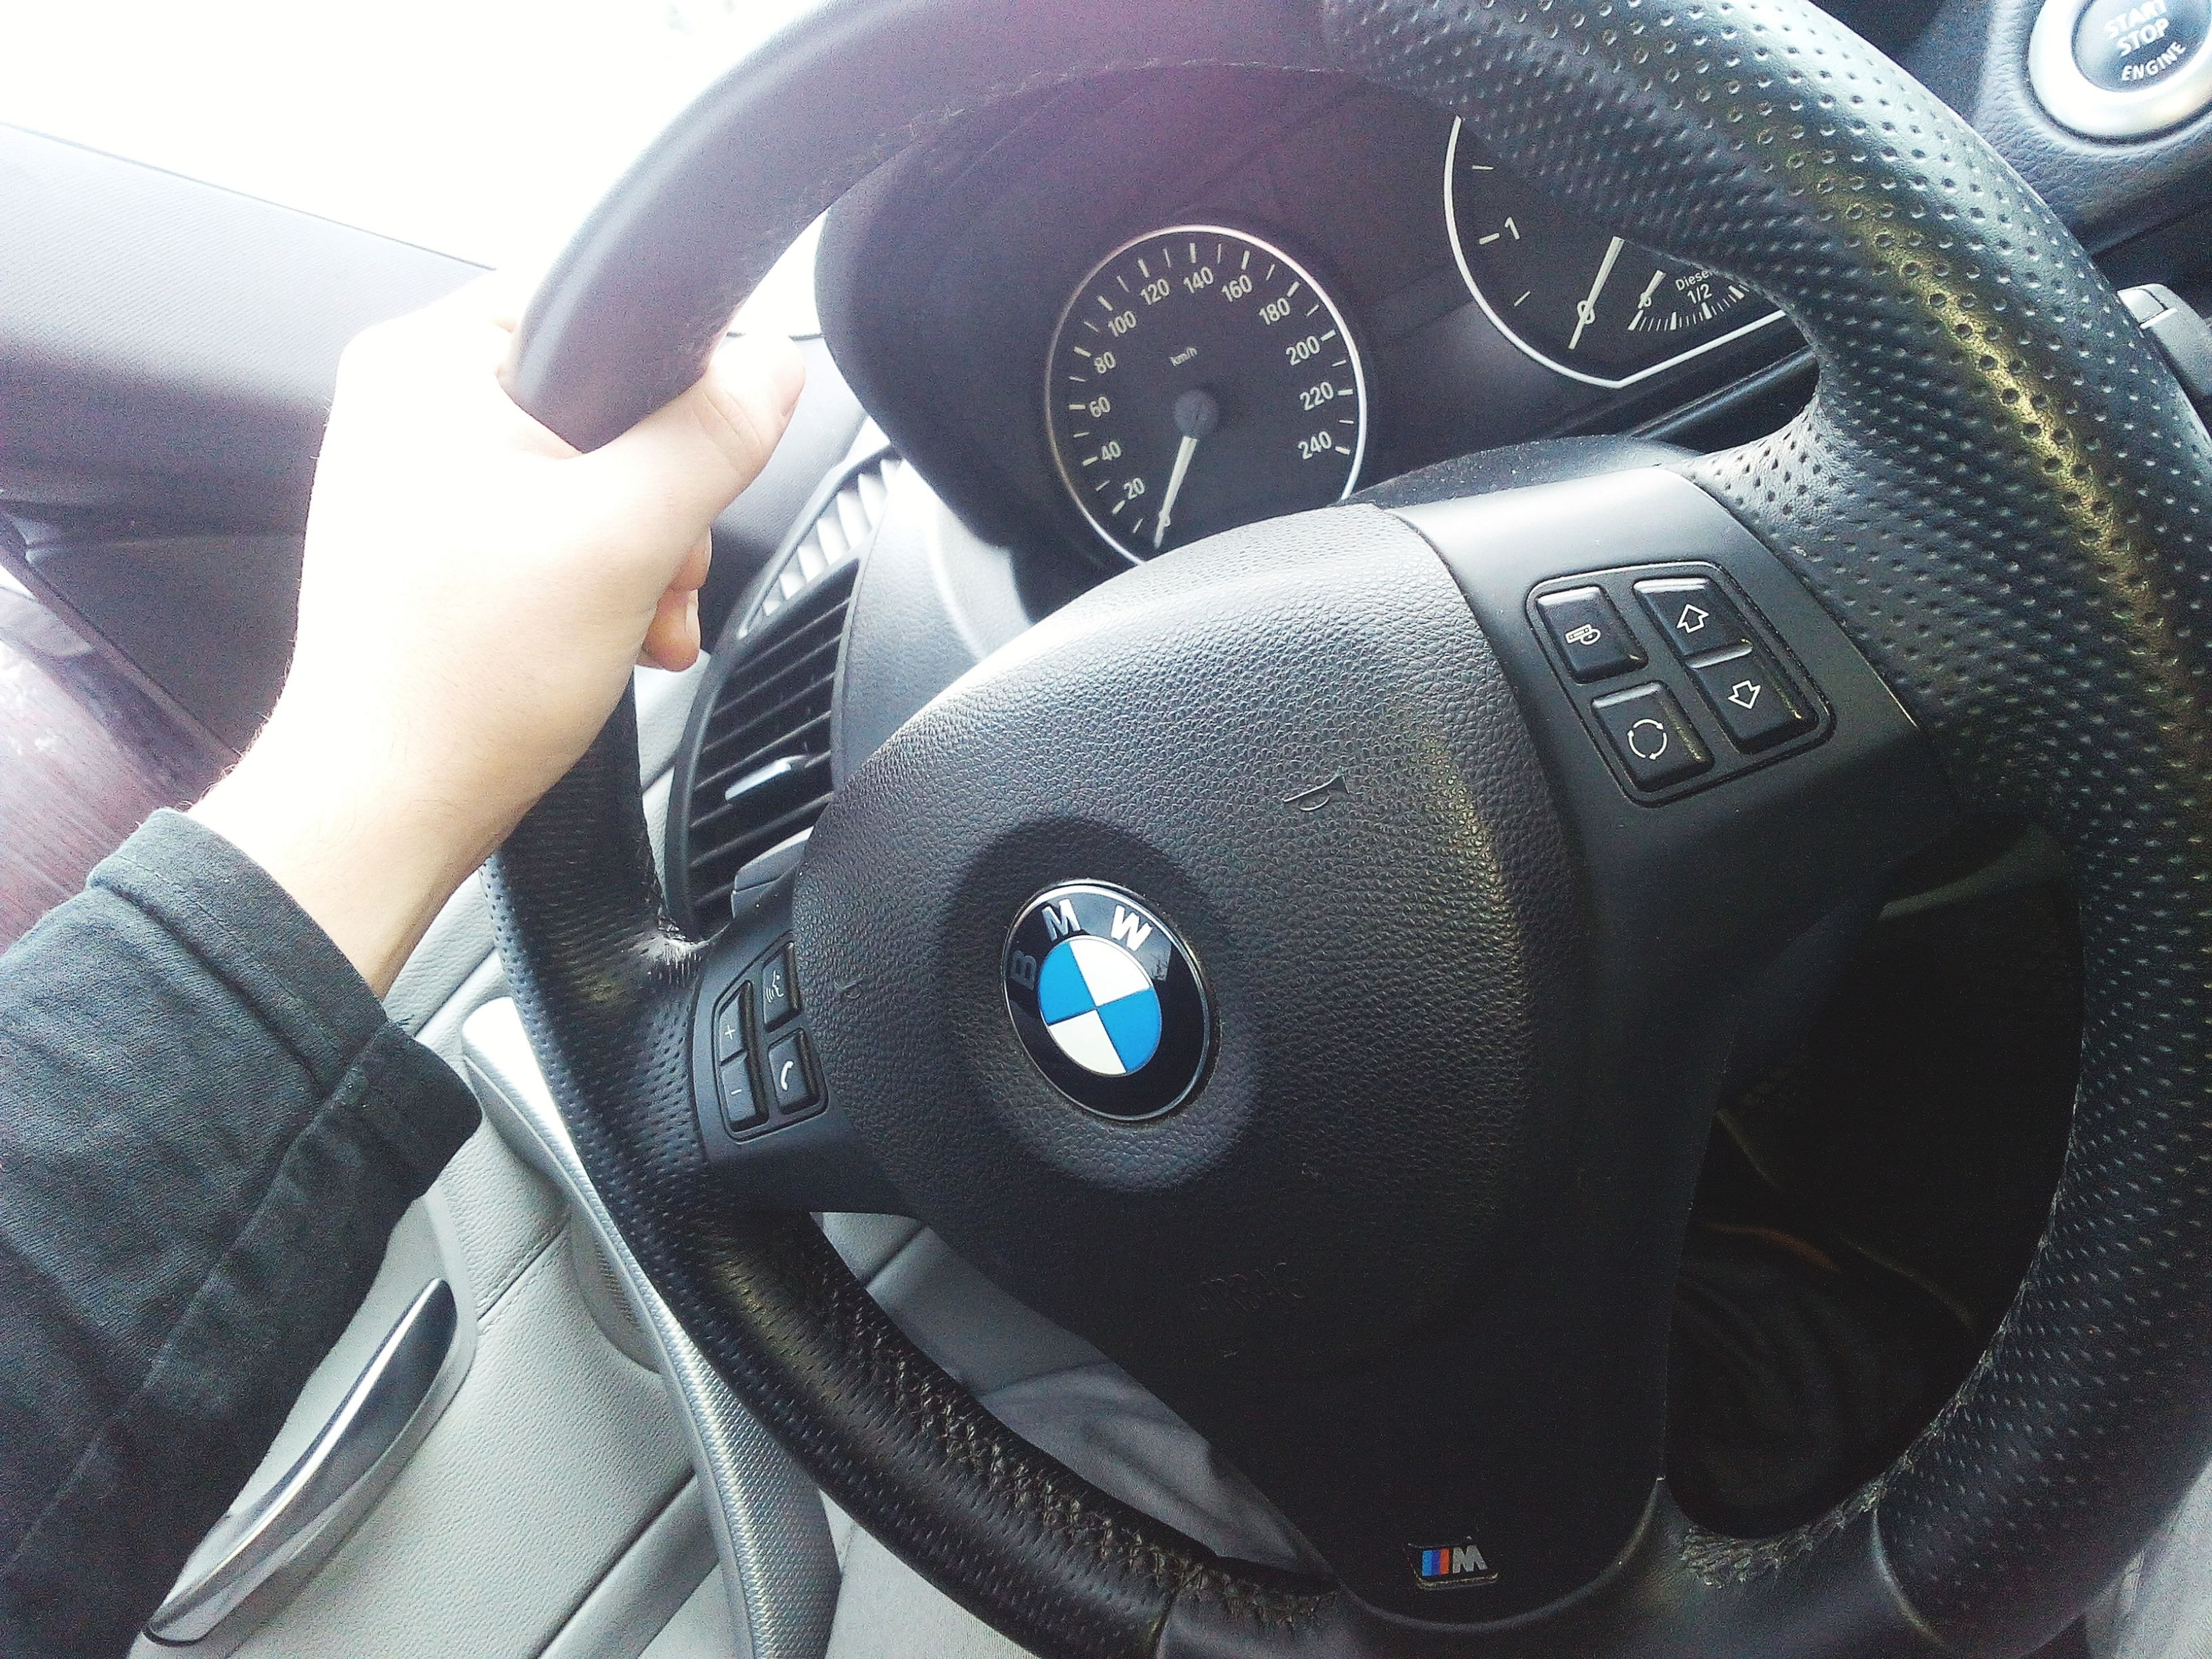 land vehicle, transportation, mode of transport, car, part of, close-up, cropped, technology, car interior, person, men, travel, vehicle interior, indoors, holding, photography themes, camera - photographic equipment